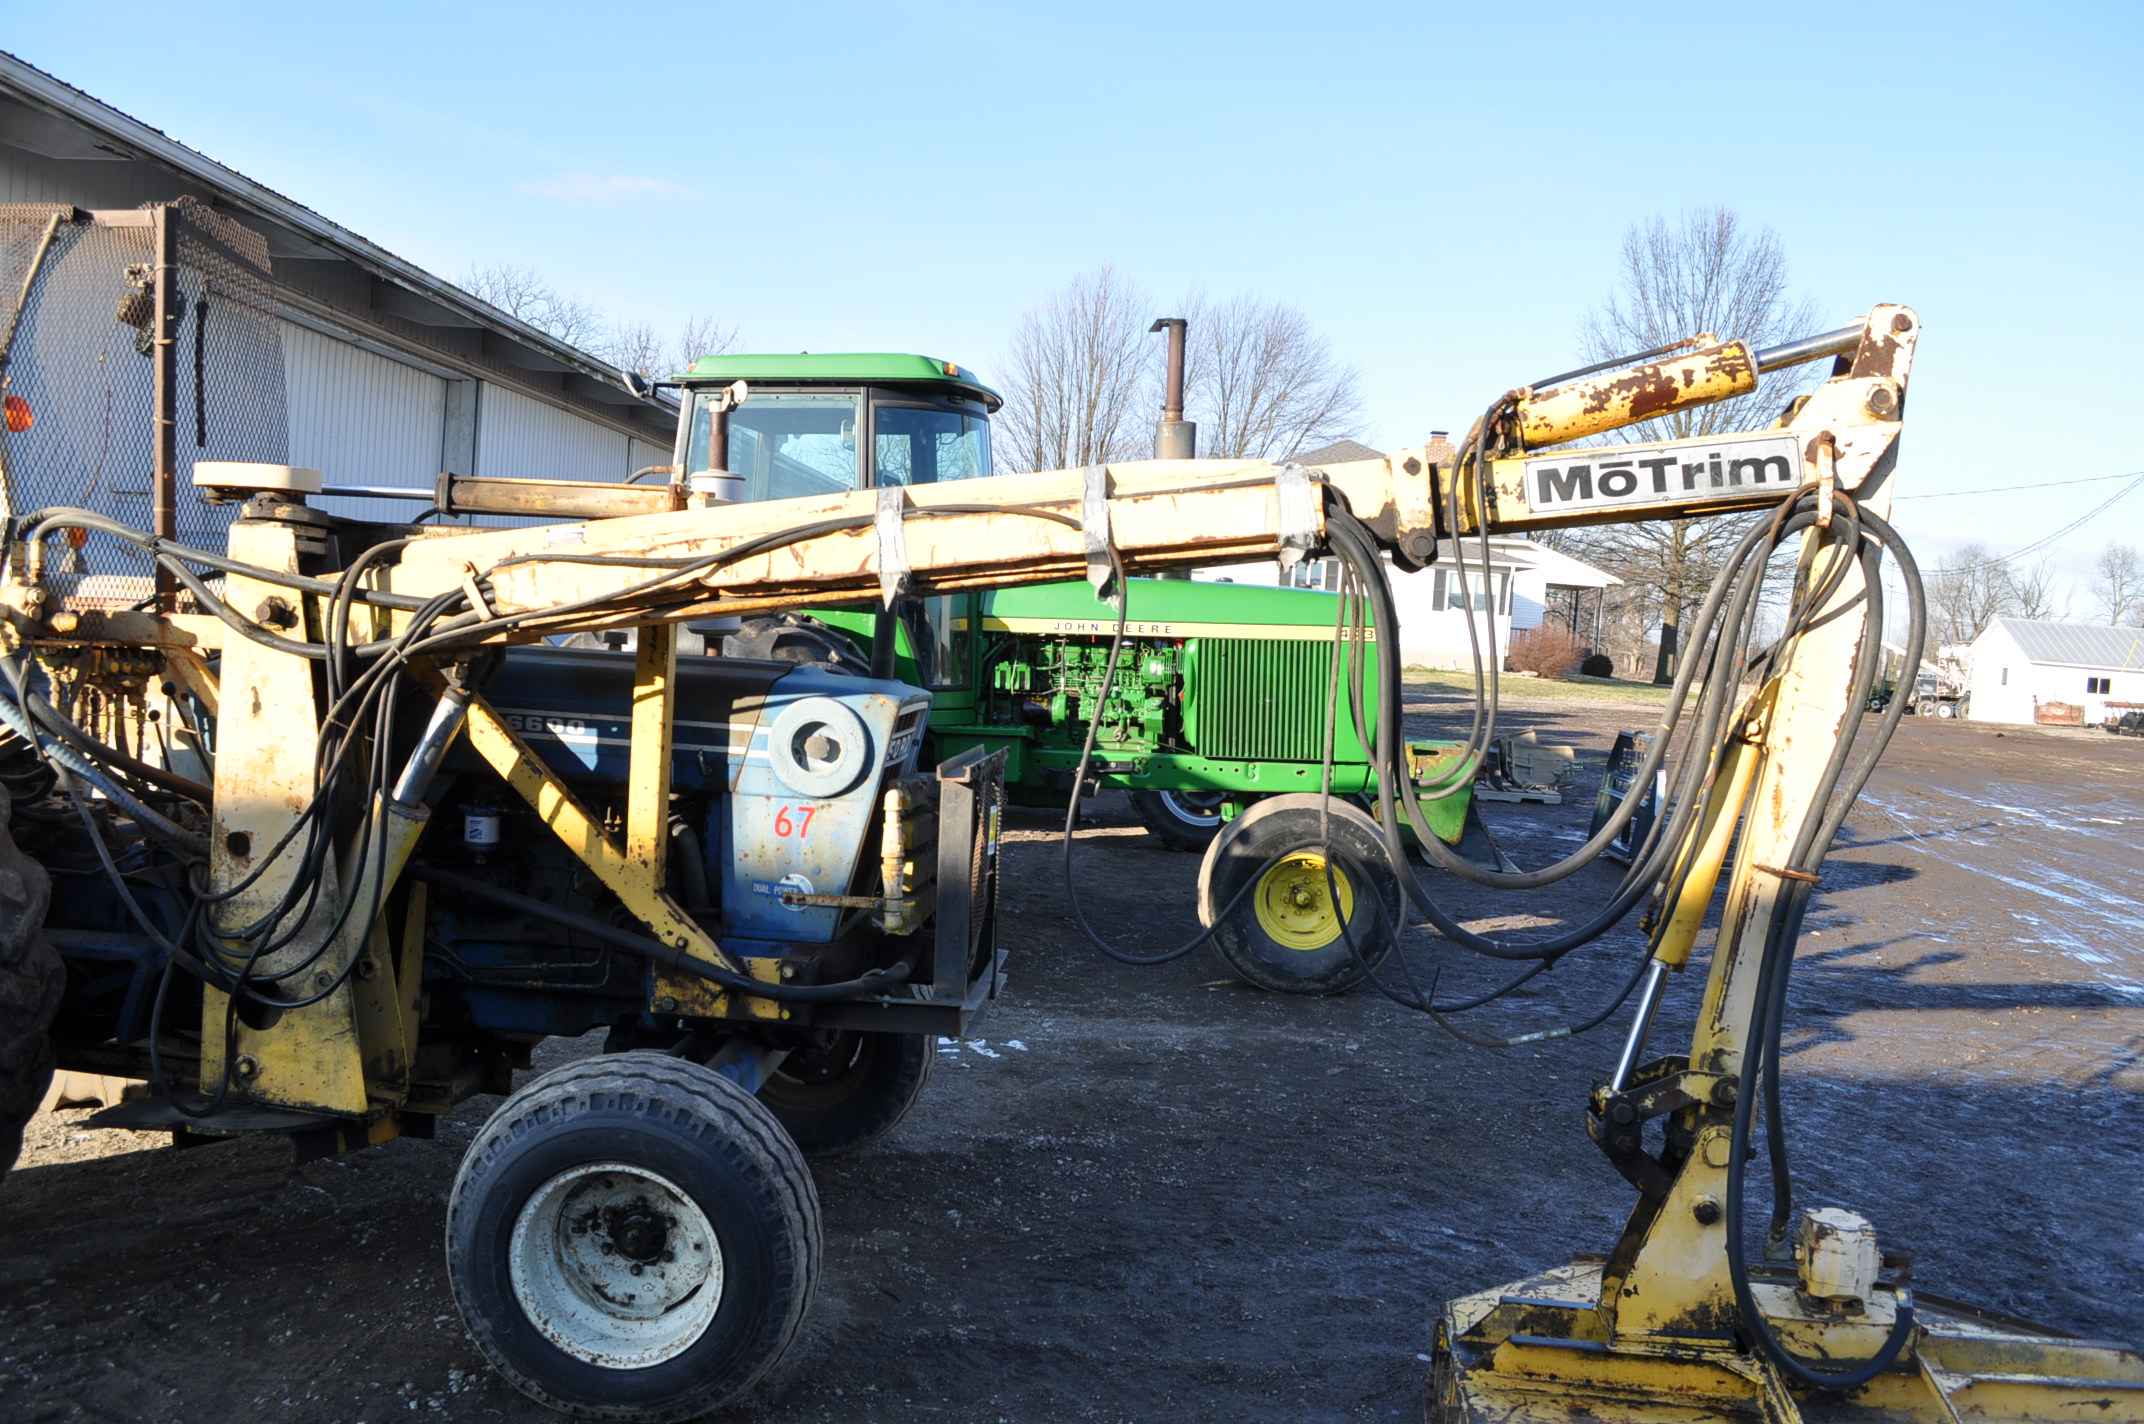 Ford 6600 tractor with MoTrim side arm mower, diesel, dual power, 540 PTO, hyd telescoping arm w/ - Image 11 of 18